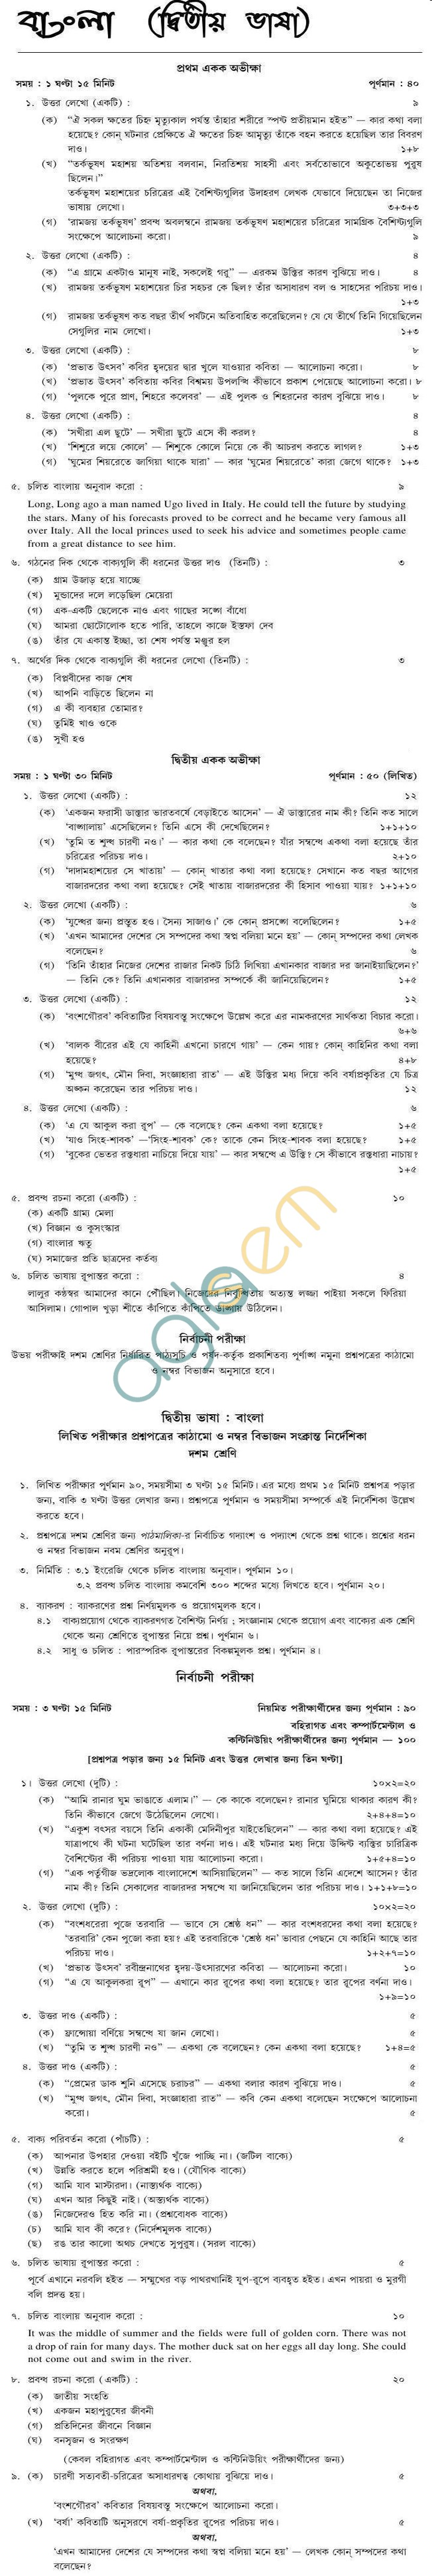 cbse sample question papers for class 9 term 1 2012